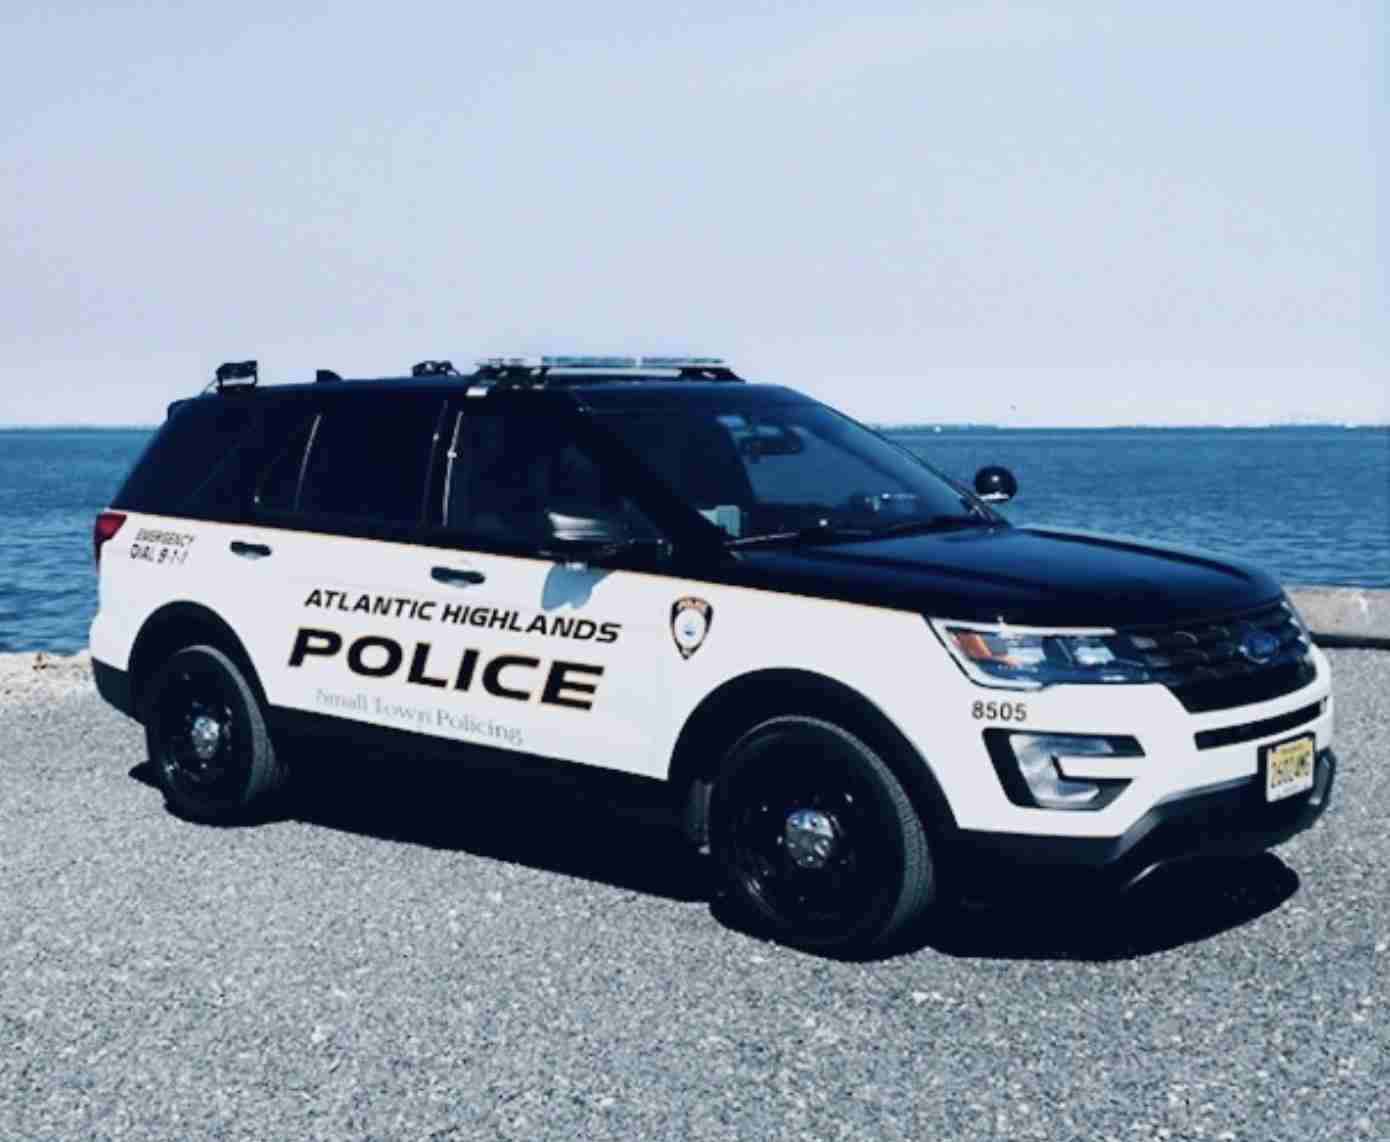 atlantic highlands police department